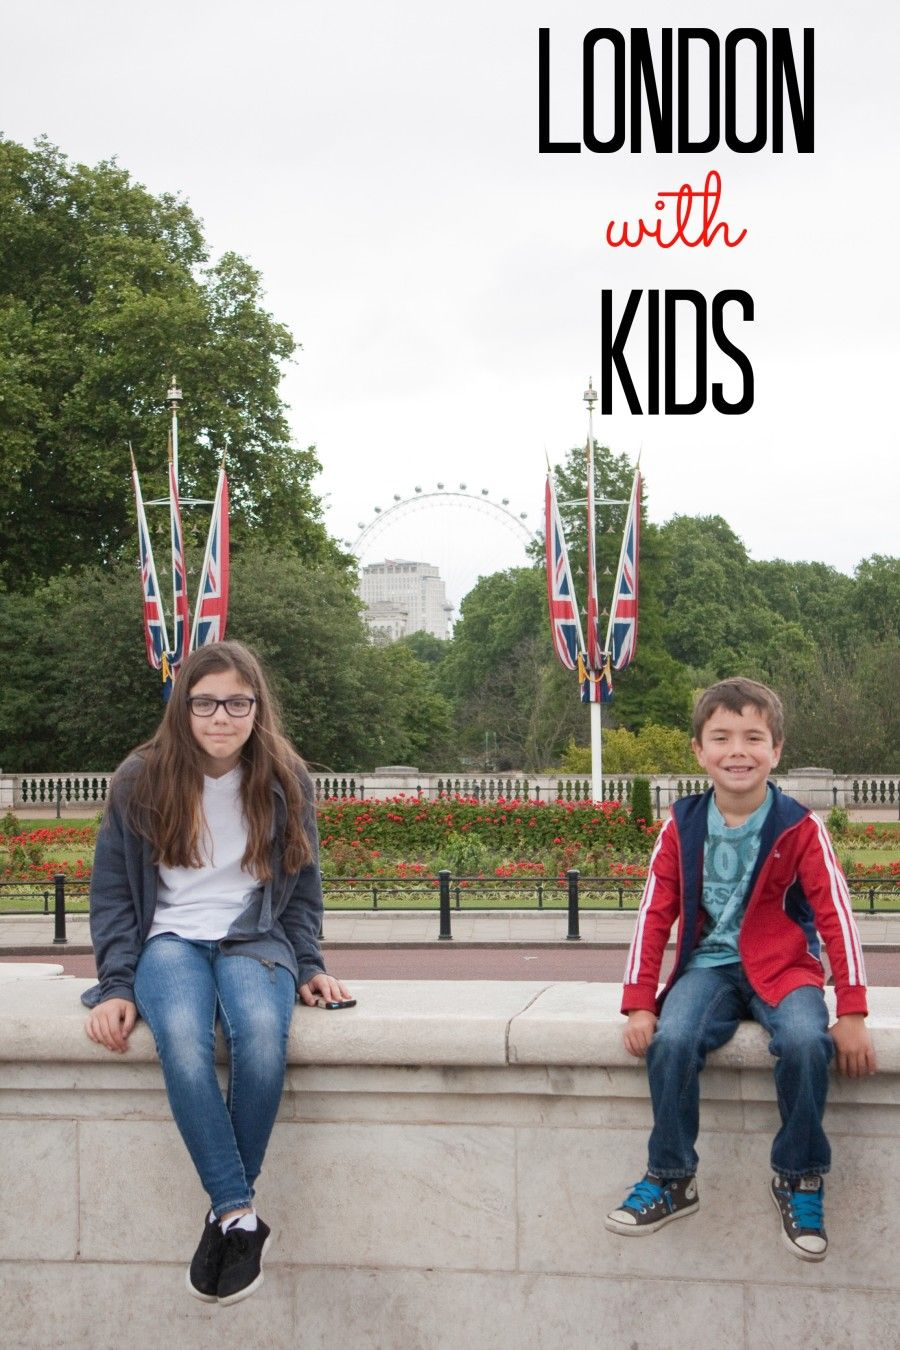 Family Travel London London with kids, Family travel